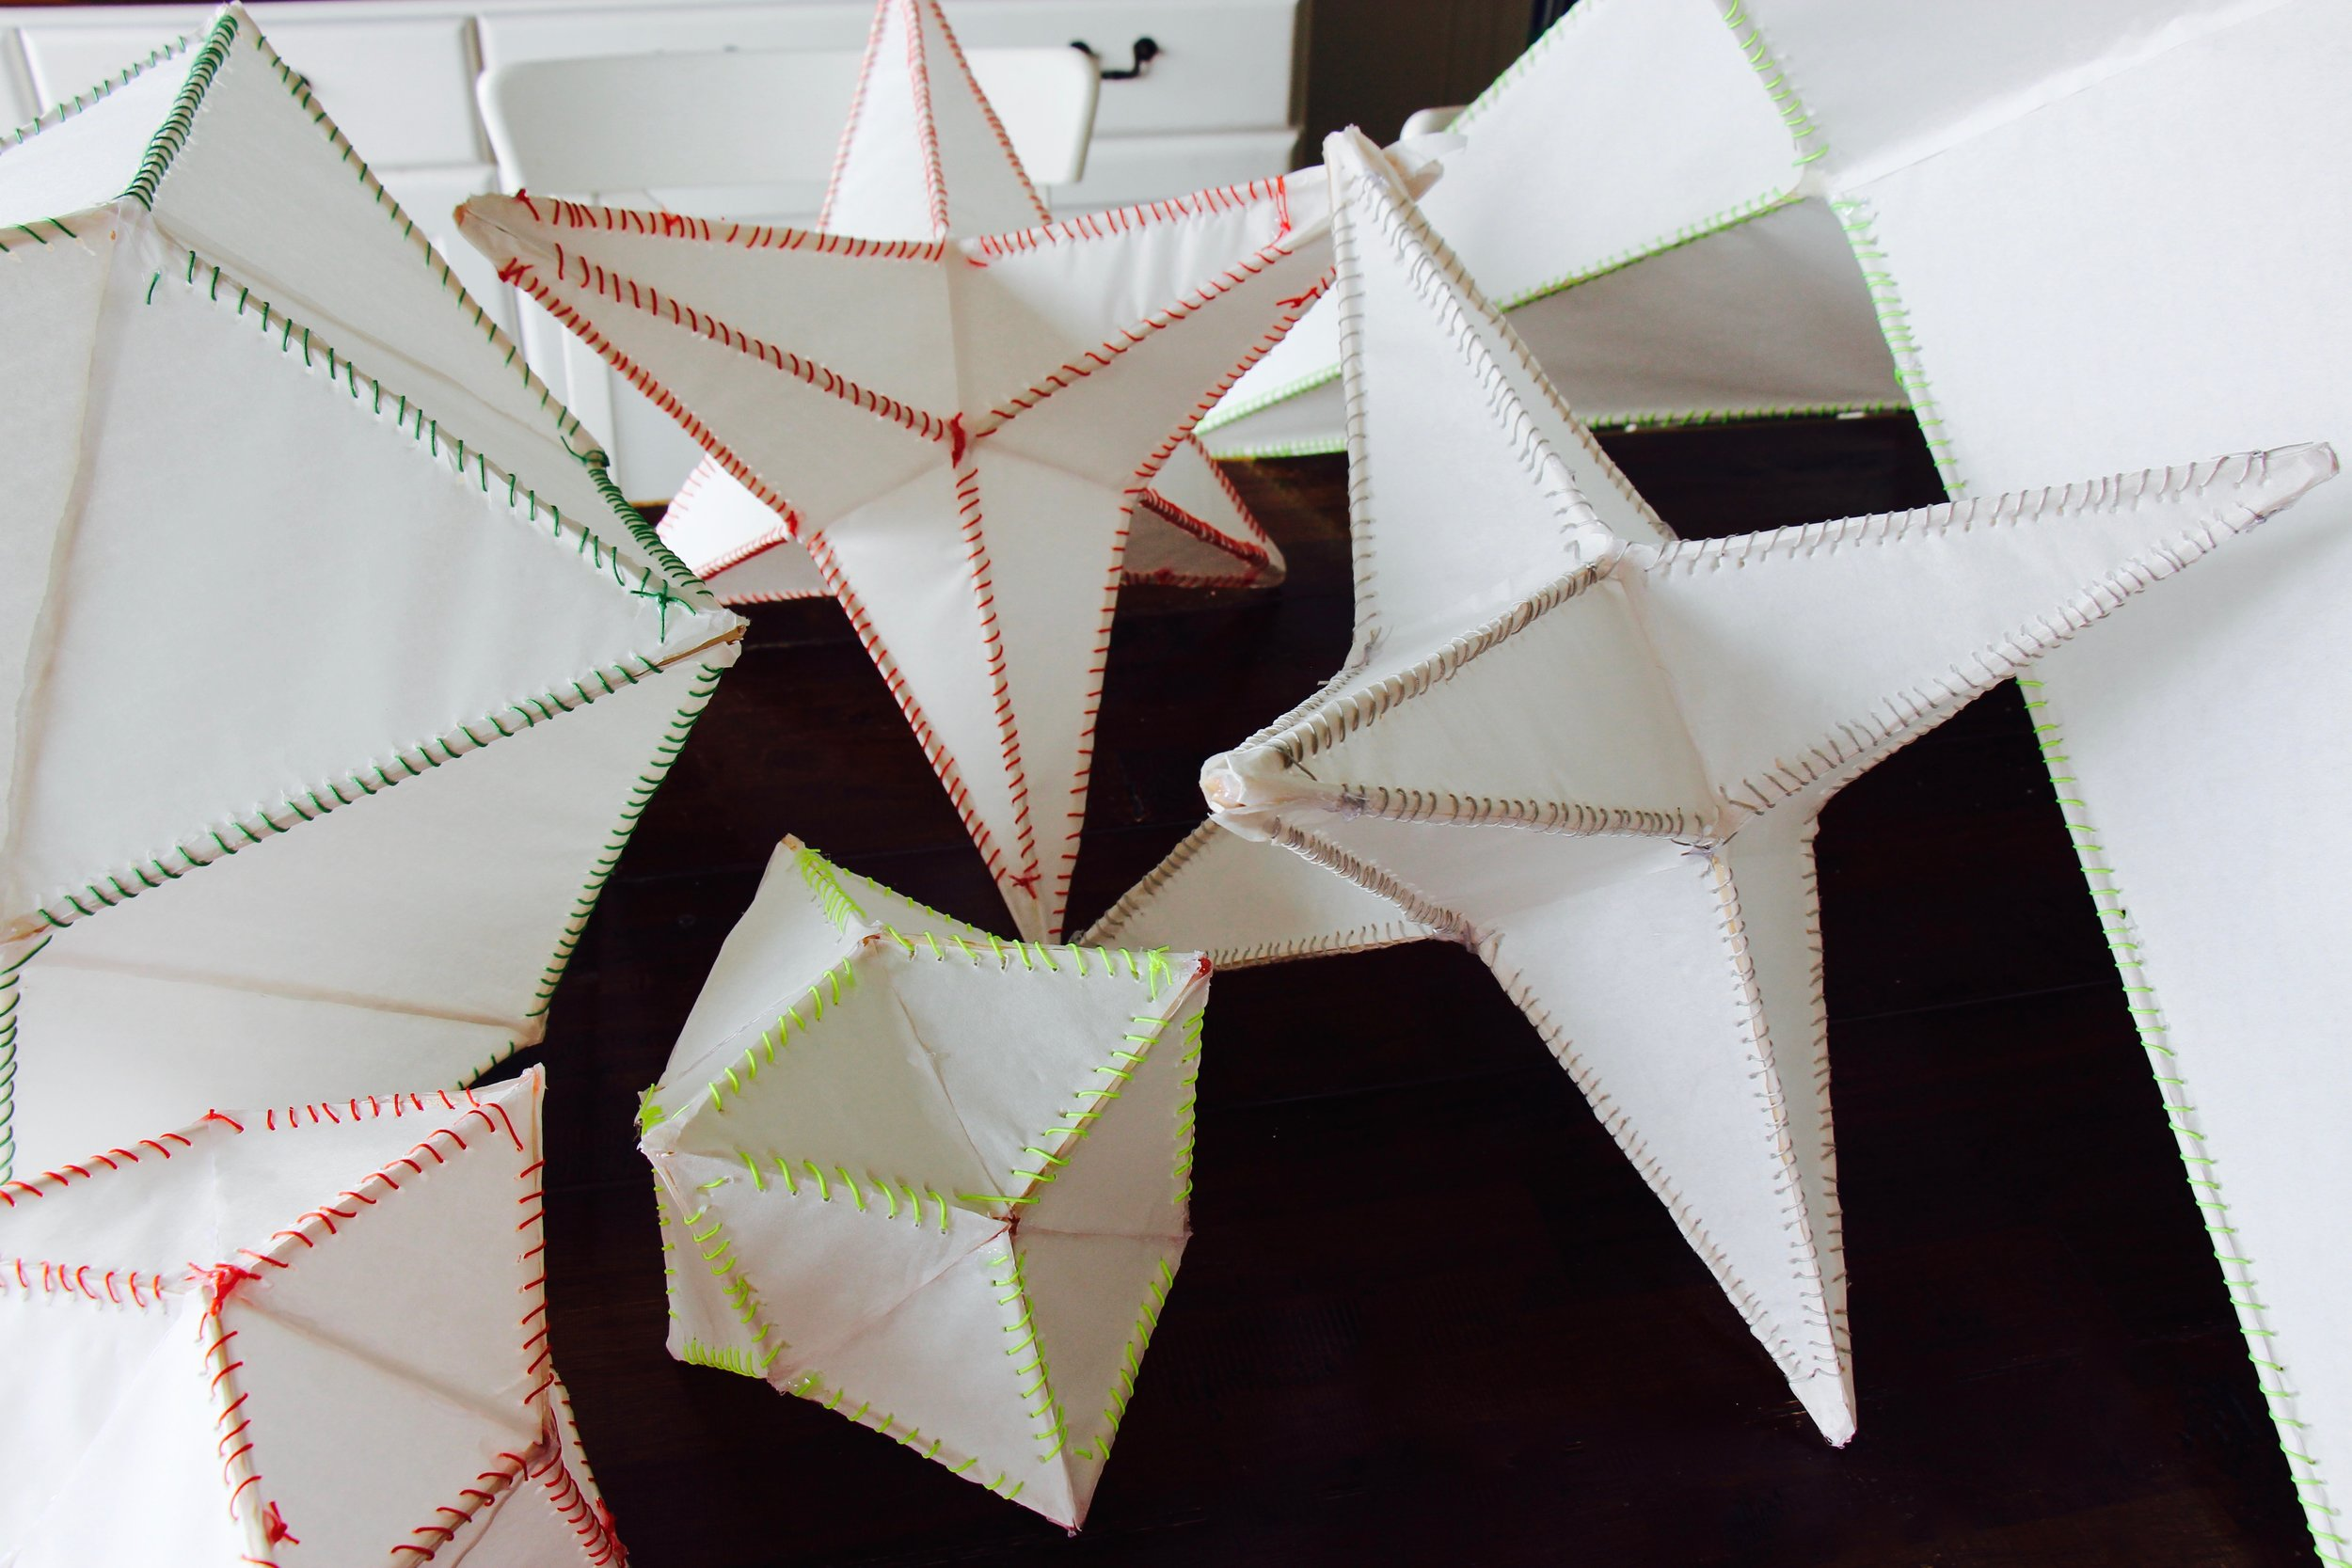 condensed and pointed stars ... beautiful geometry